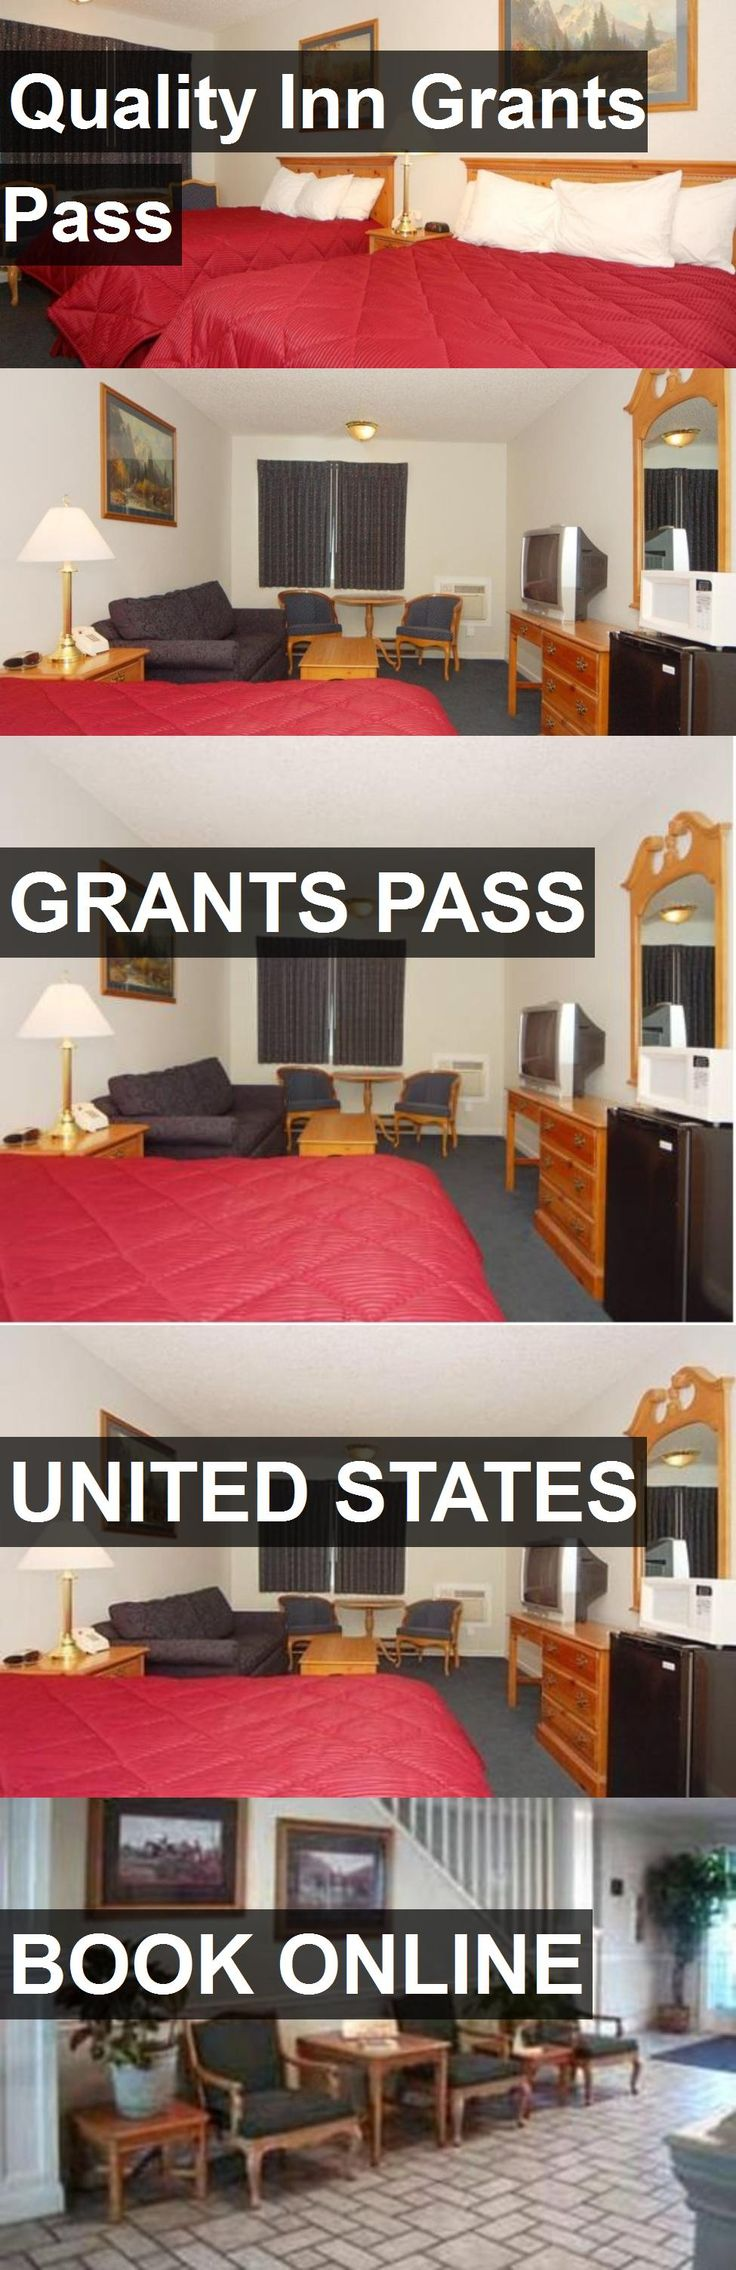 Hotel Quality Inn Grants Pass in Grants Pass, United States. For more information, photos, reviews and best prices please follow the link. #UnitedStates #GrantsPass #QualityInnGrantsPass #hotel #travel #vacation